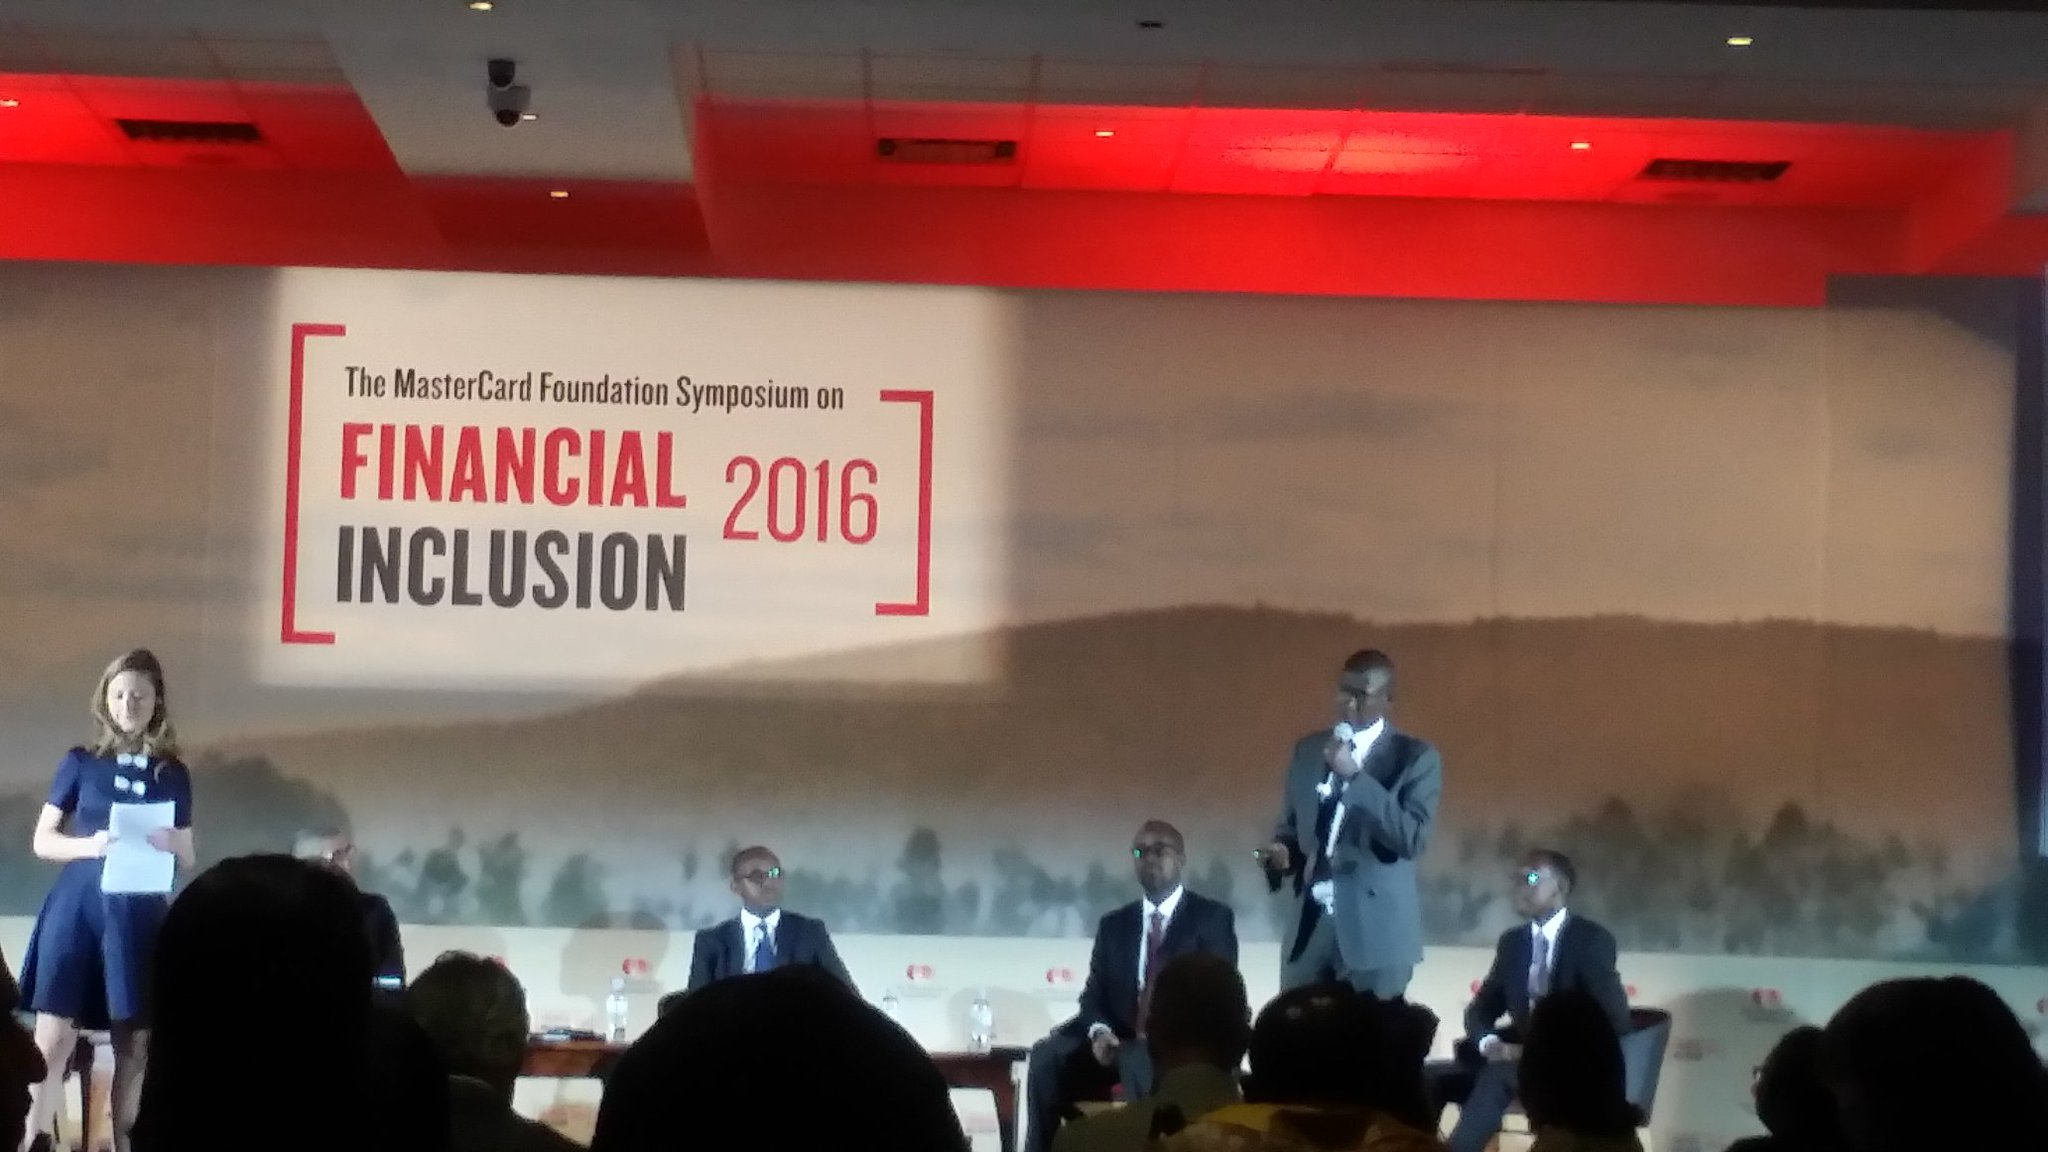 Mr.Murenzi telling us about the impressive financial inclusion achievements in Rwanda 89% included #BNR #sofi2016 https://t.co/2E5F7vTcSE